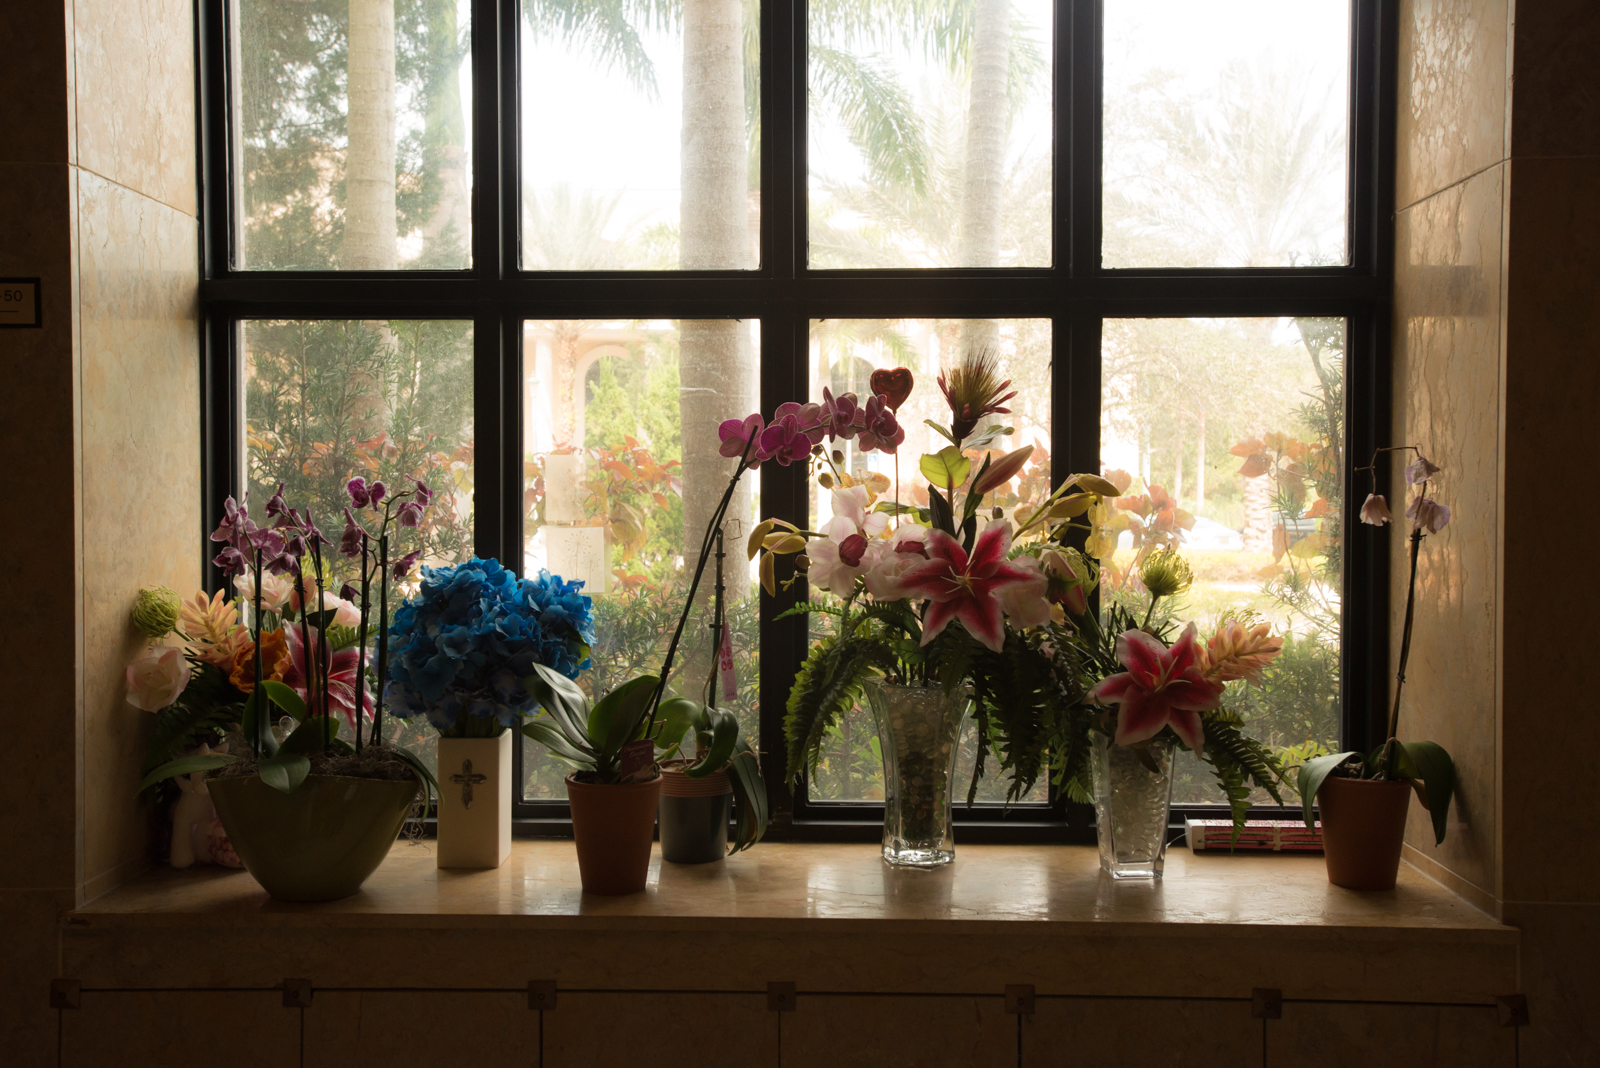 grieving flowers gathered in a window